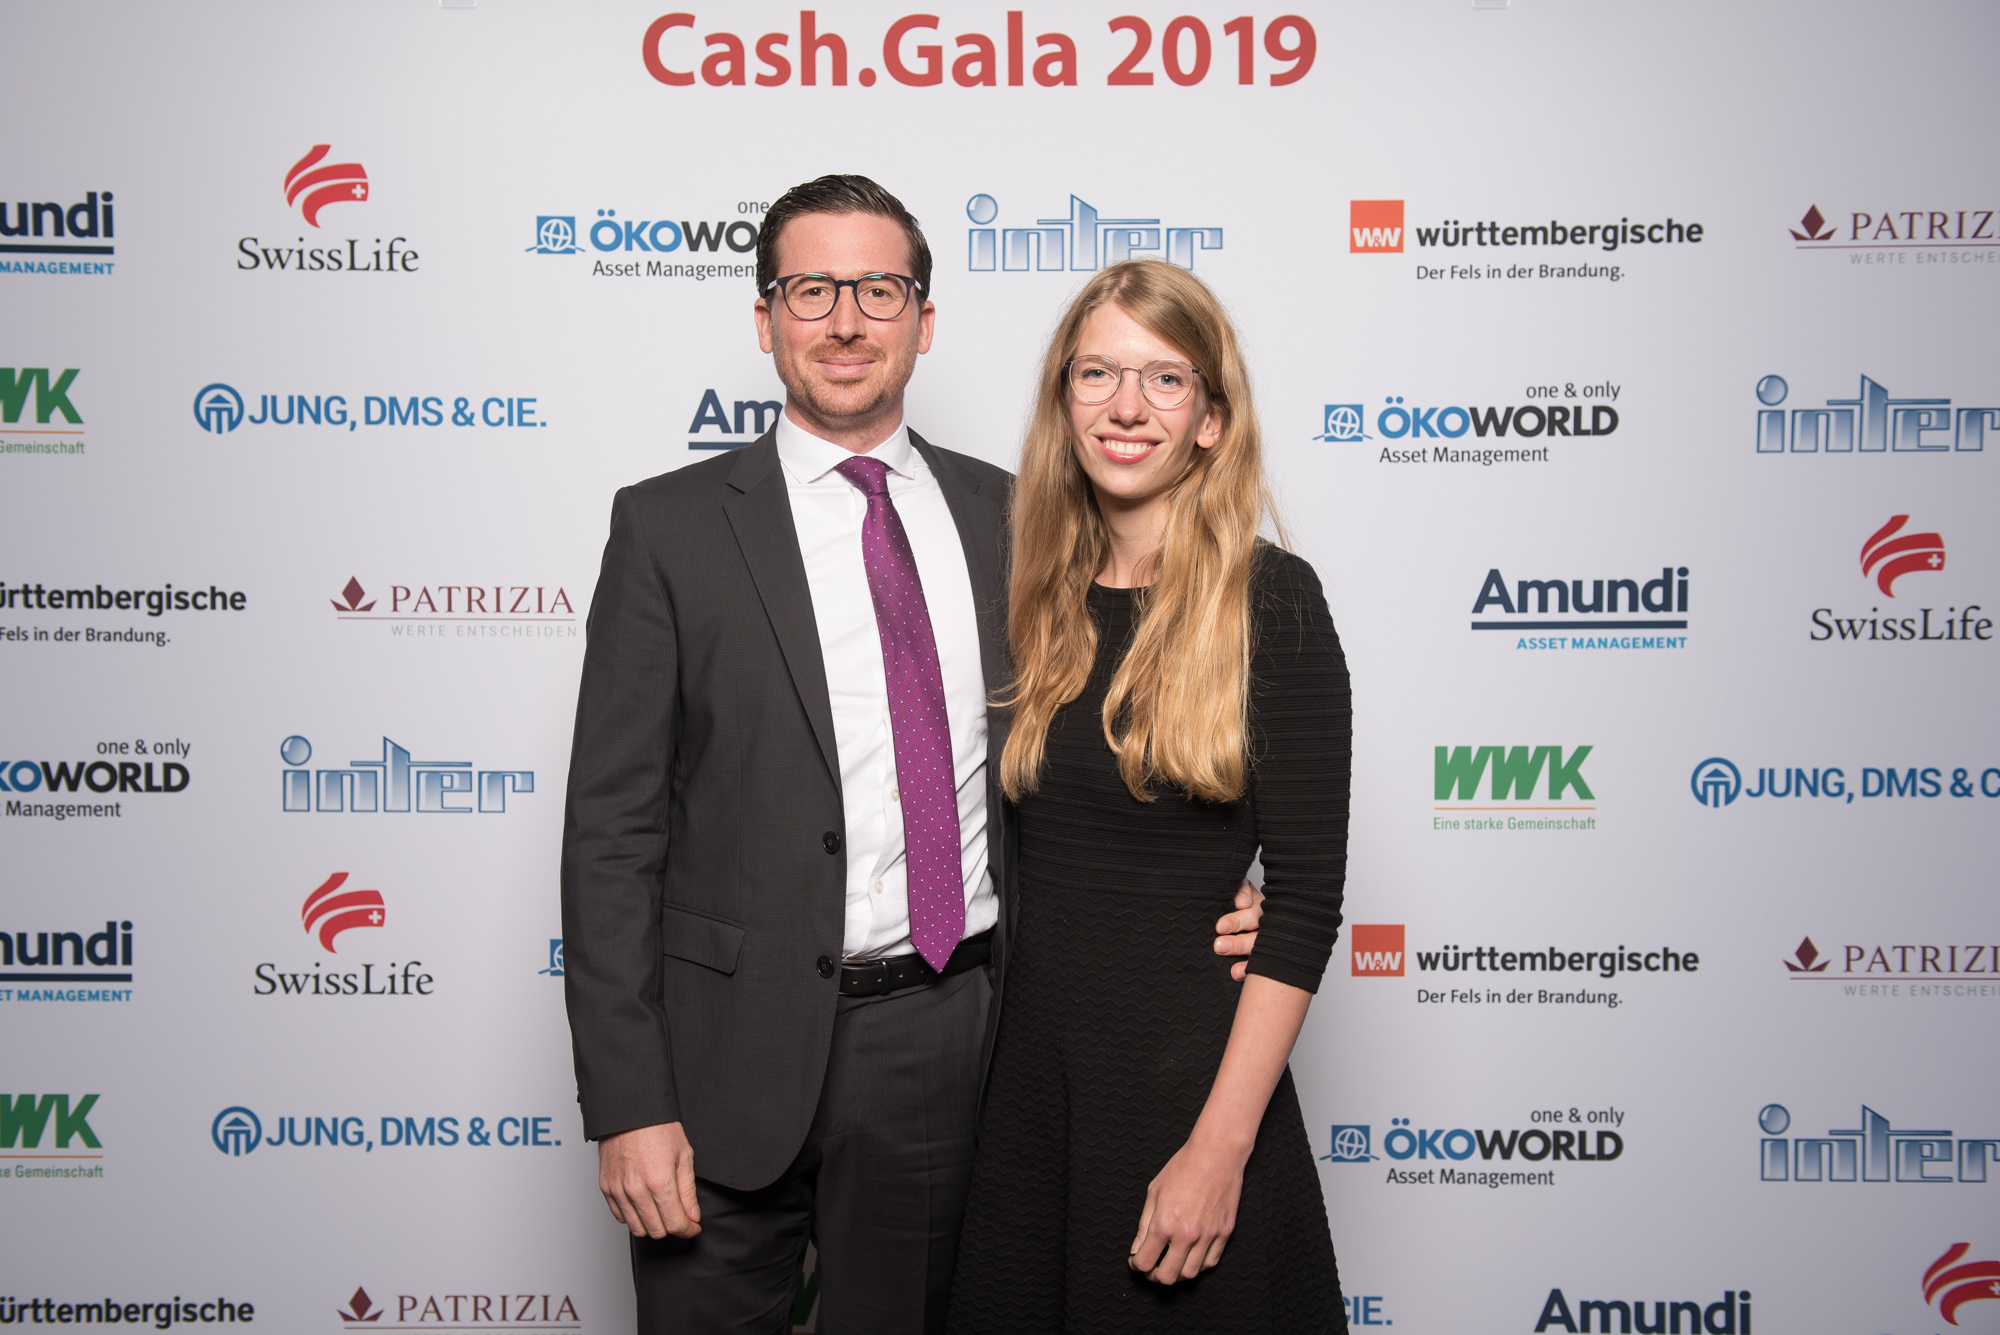 CashGala 2019 0018 AM DSC6994 in Cash.Gala 2019